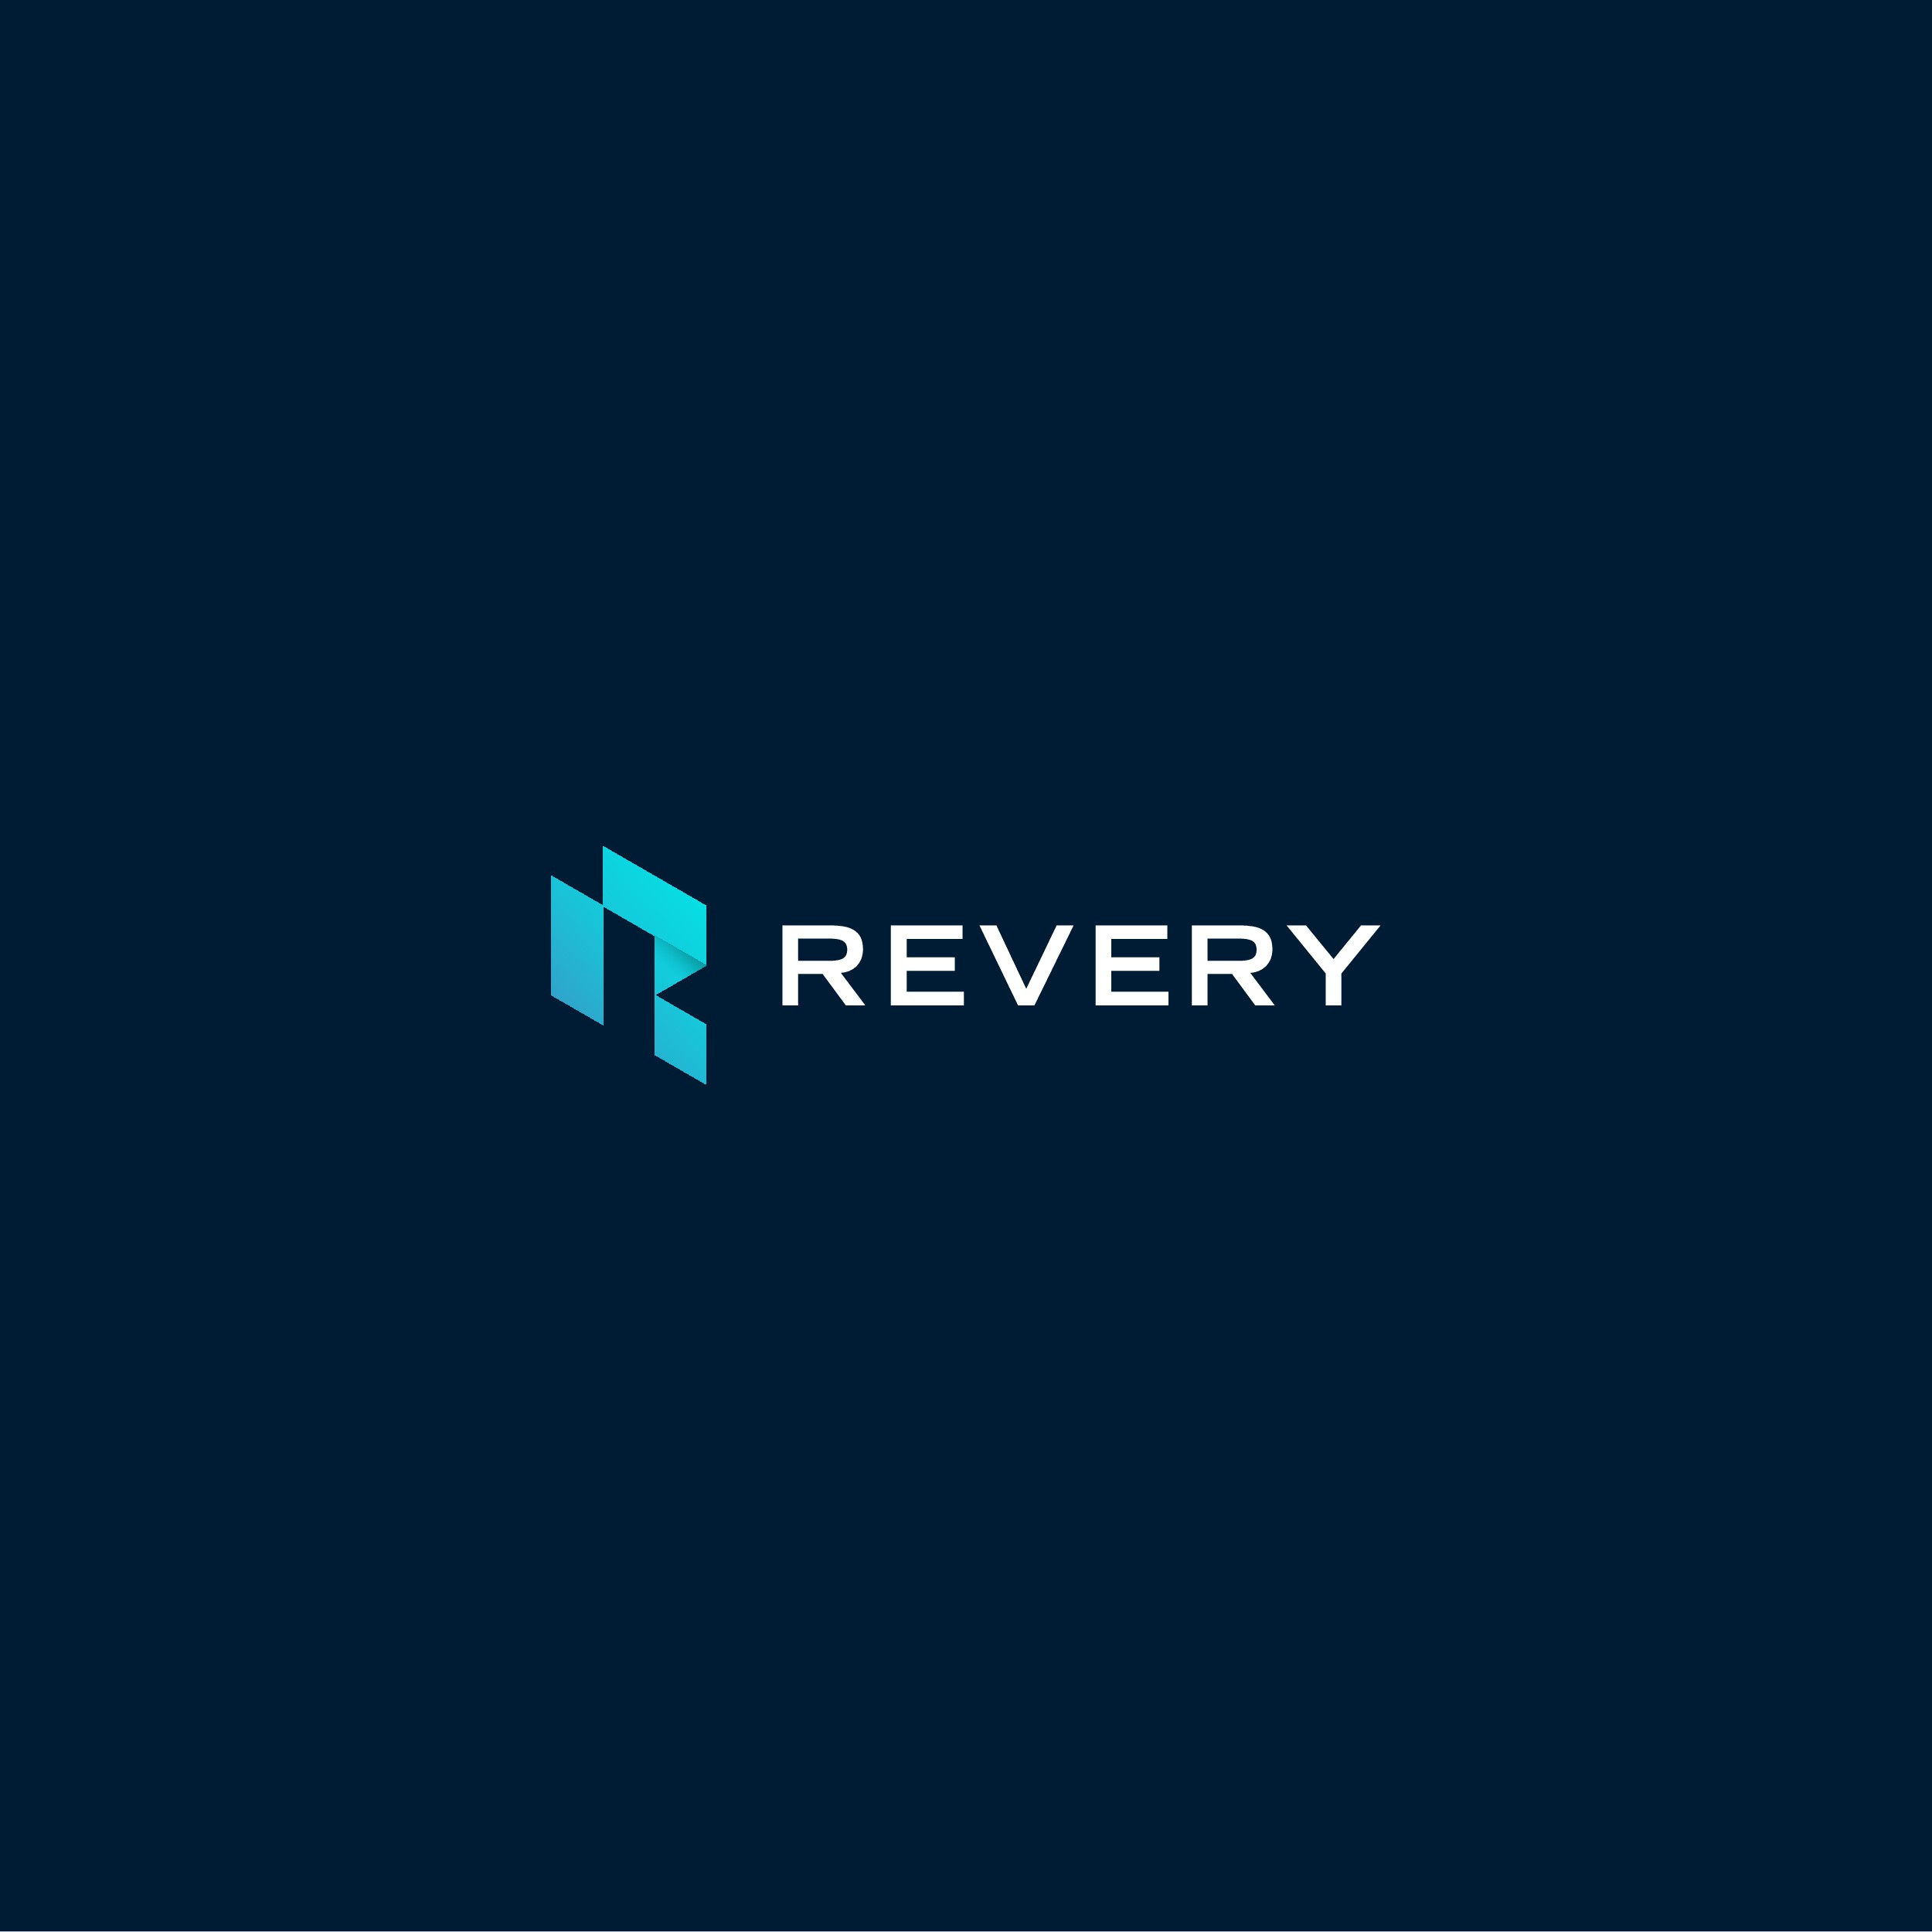 Help us design a logo for Revery - a software toolkit!